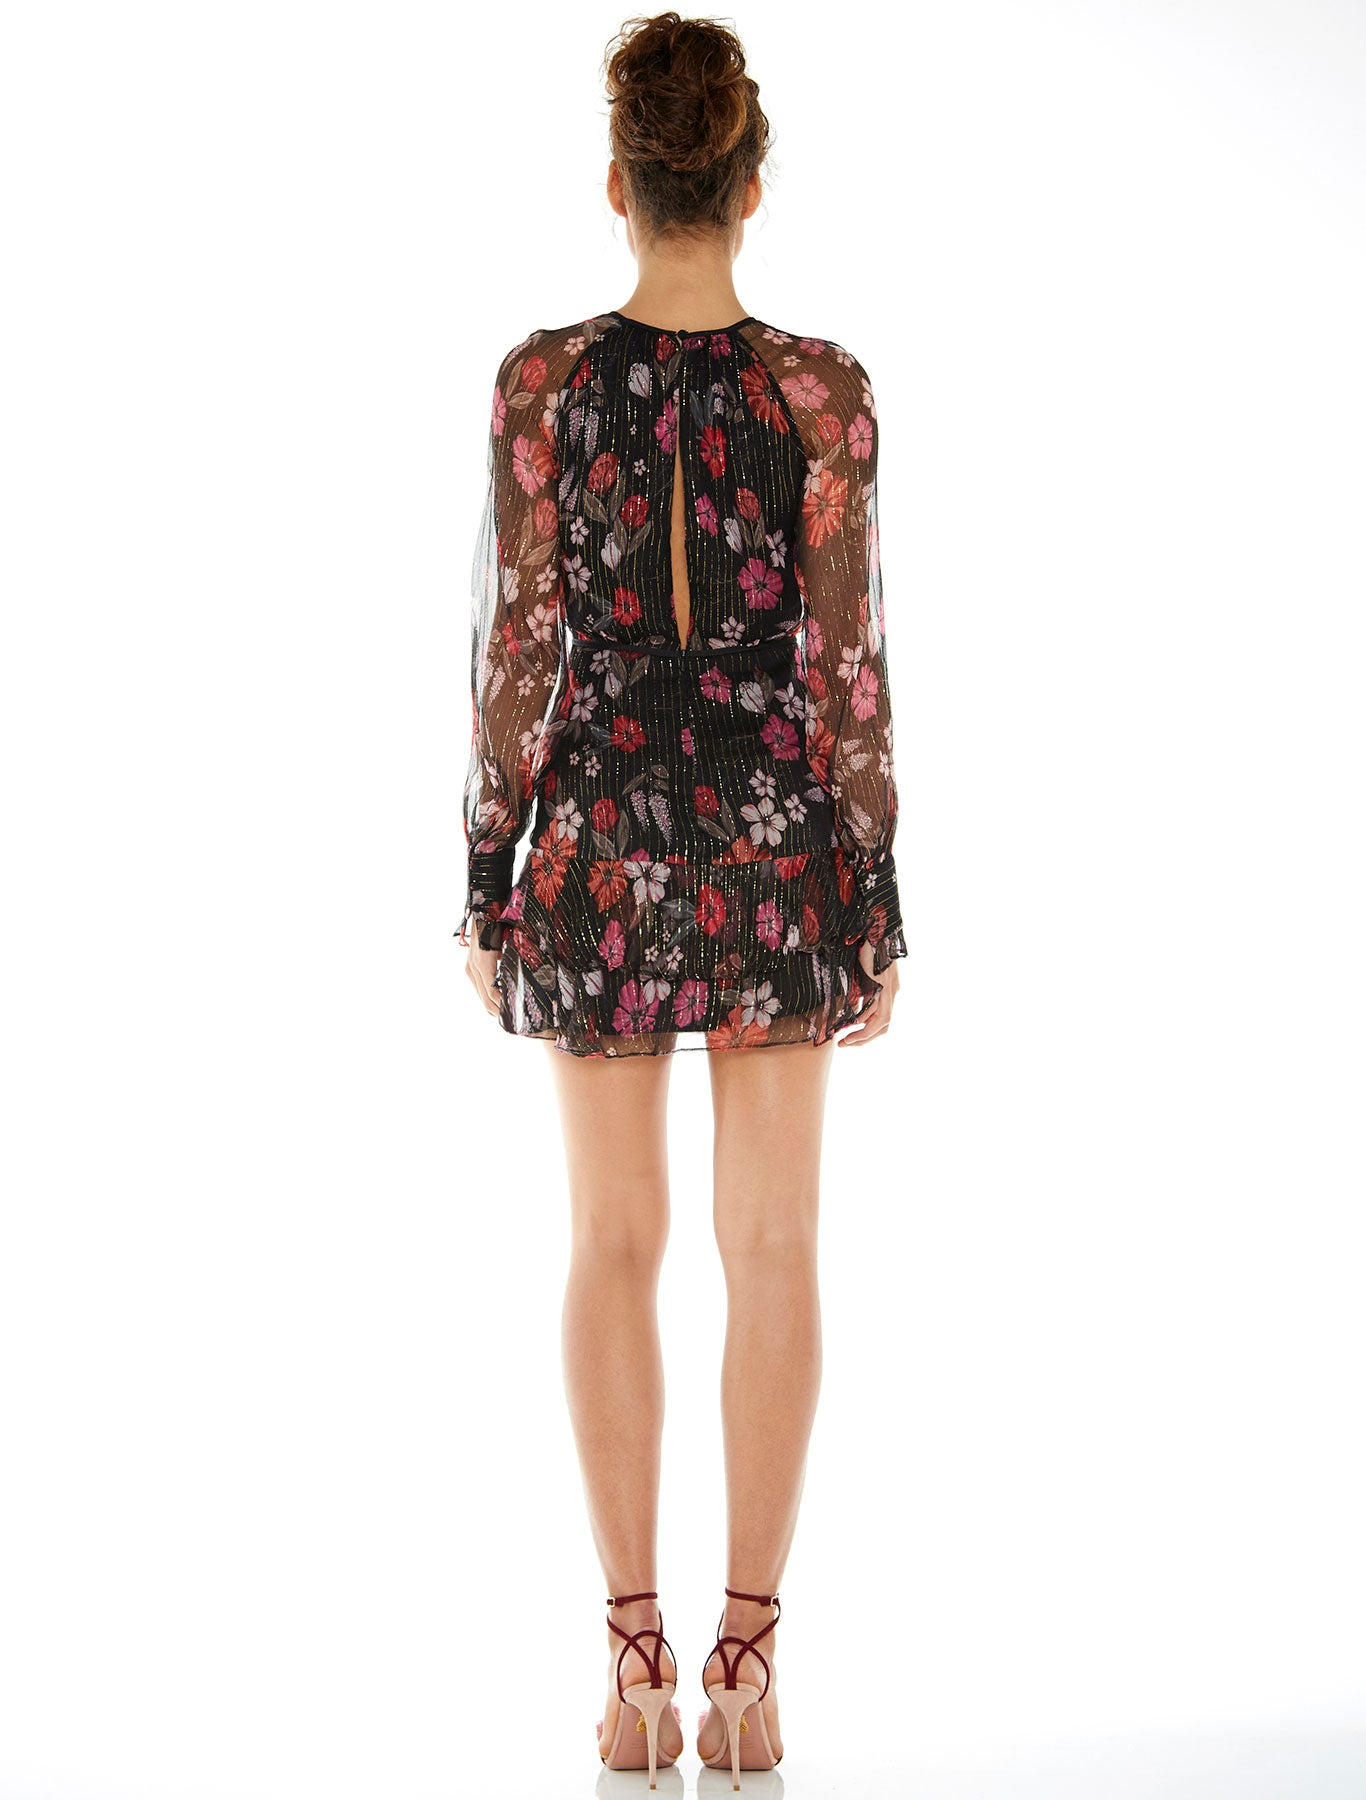 WILD BLOOM L/S MINI DRESS